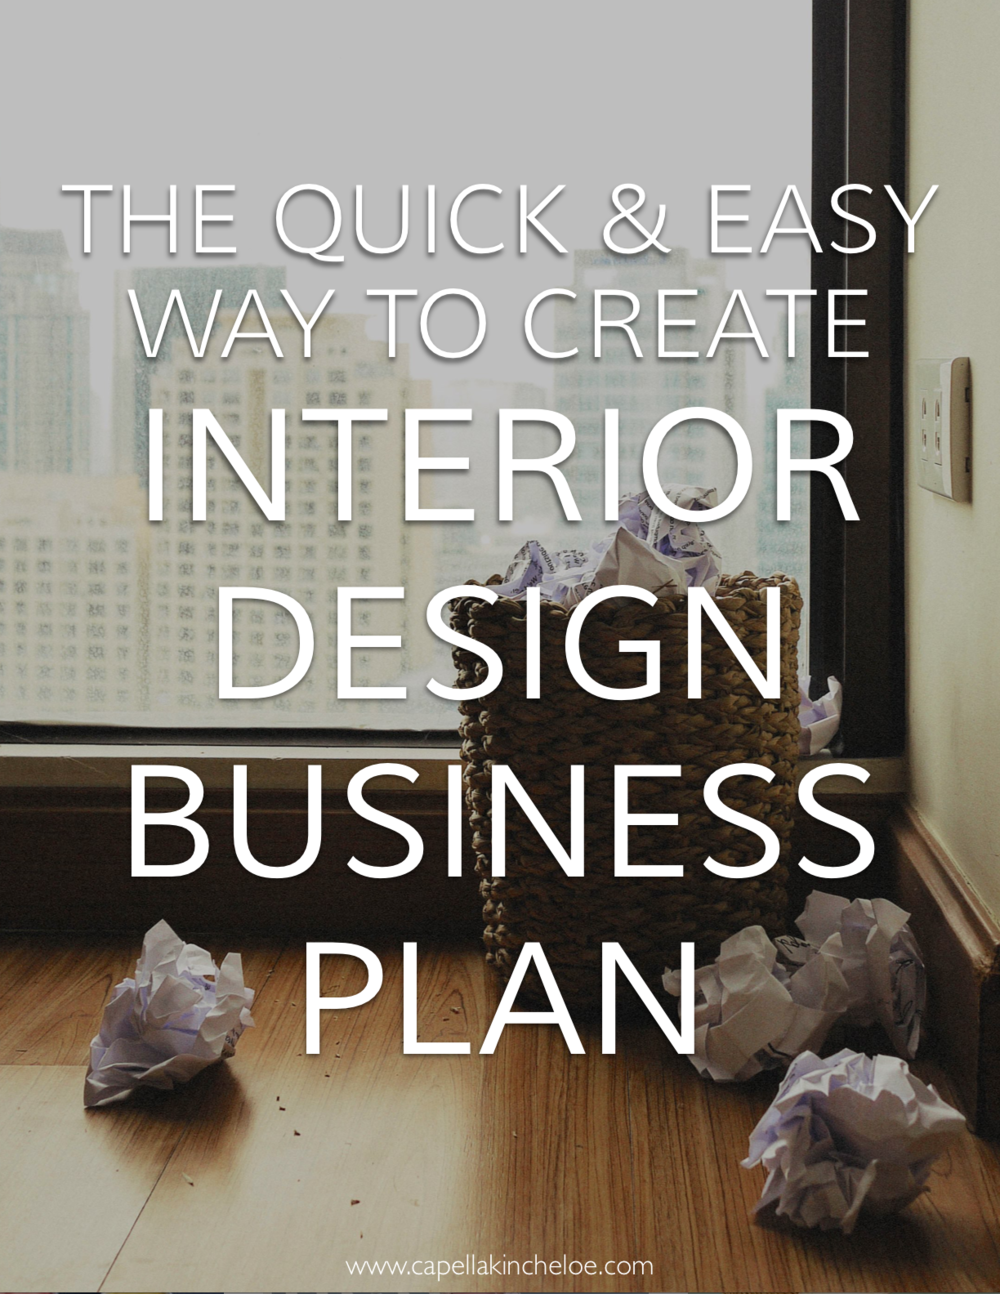 Simple Business Plans for Interior Designers Capella Kincheloe